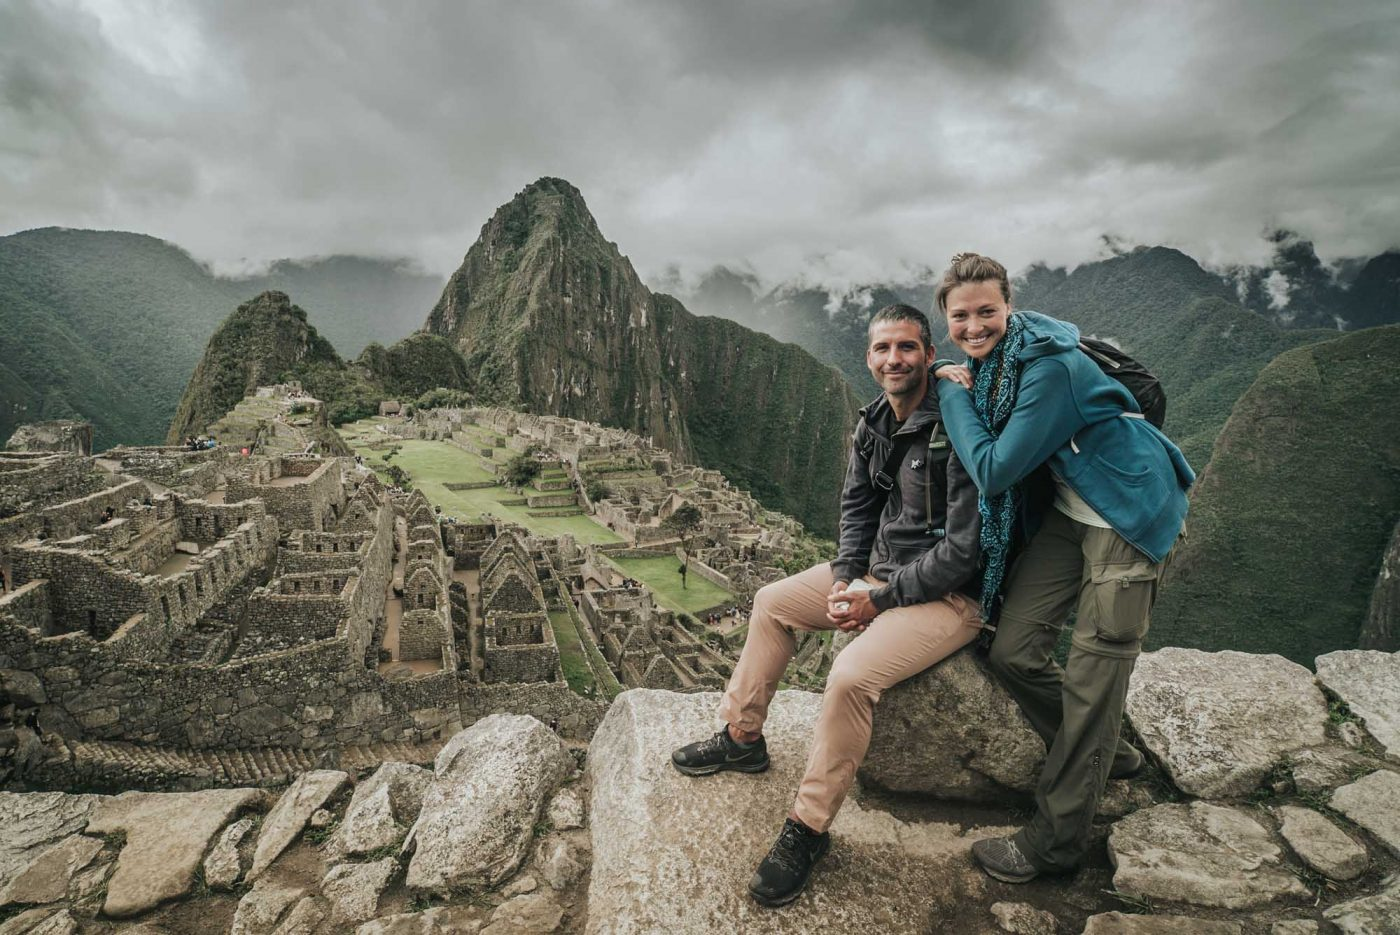 Arriving after taking the train to Machu Picchu